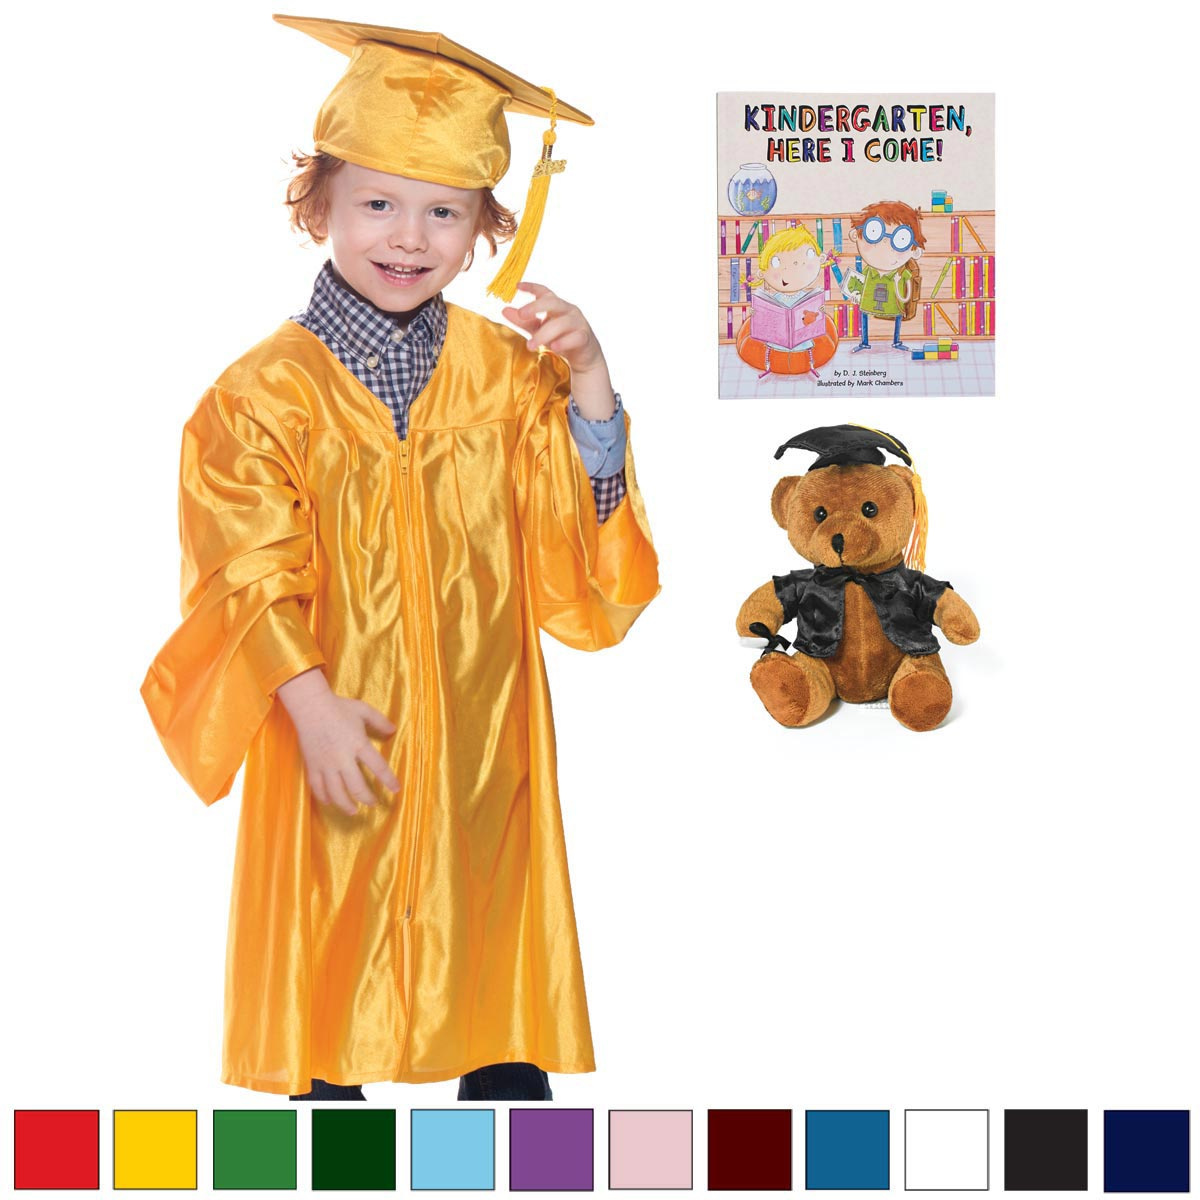 Preschool Graduation Gift Set - Shiny  sc 1 st  Rhyme University & Shiny Preschool Graduation Gift Set | Rhyme Universityu0027s